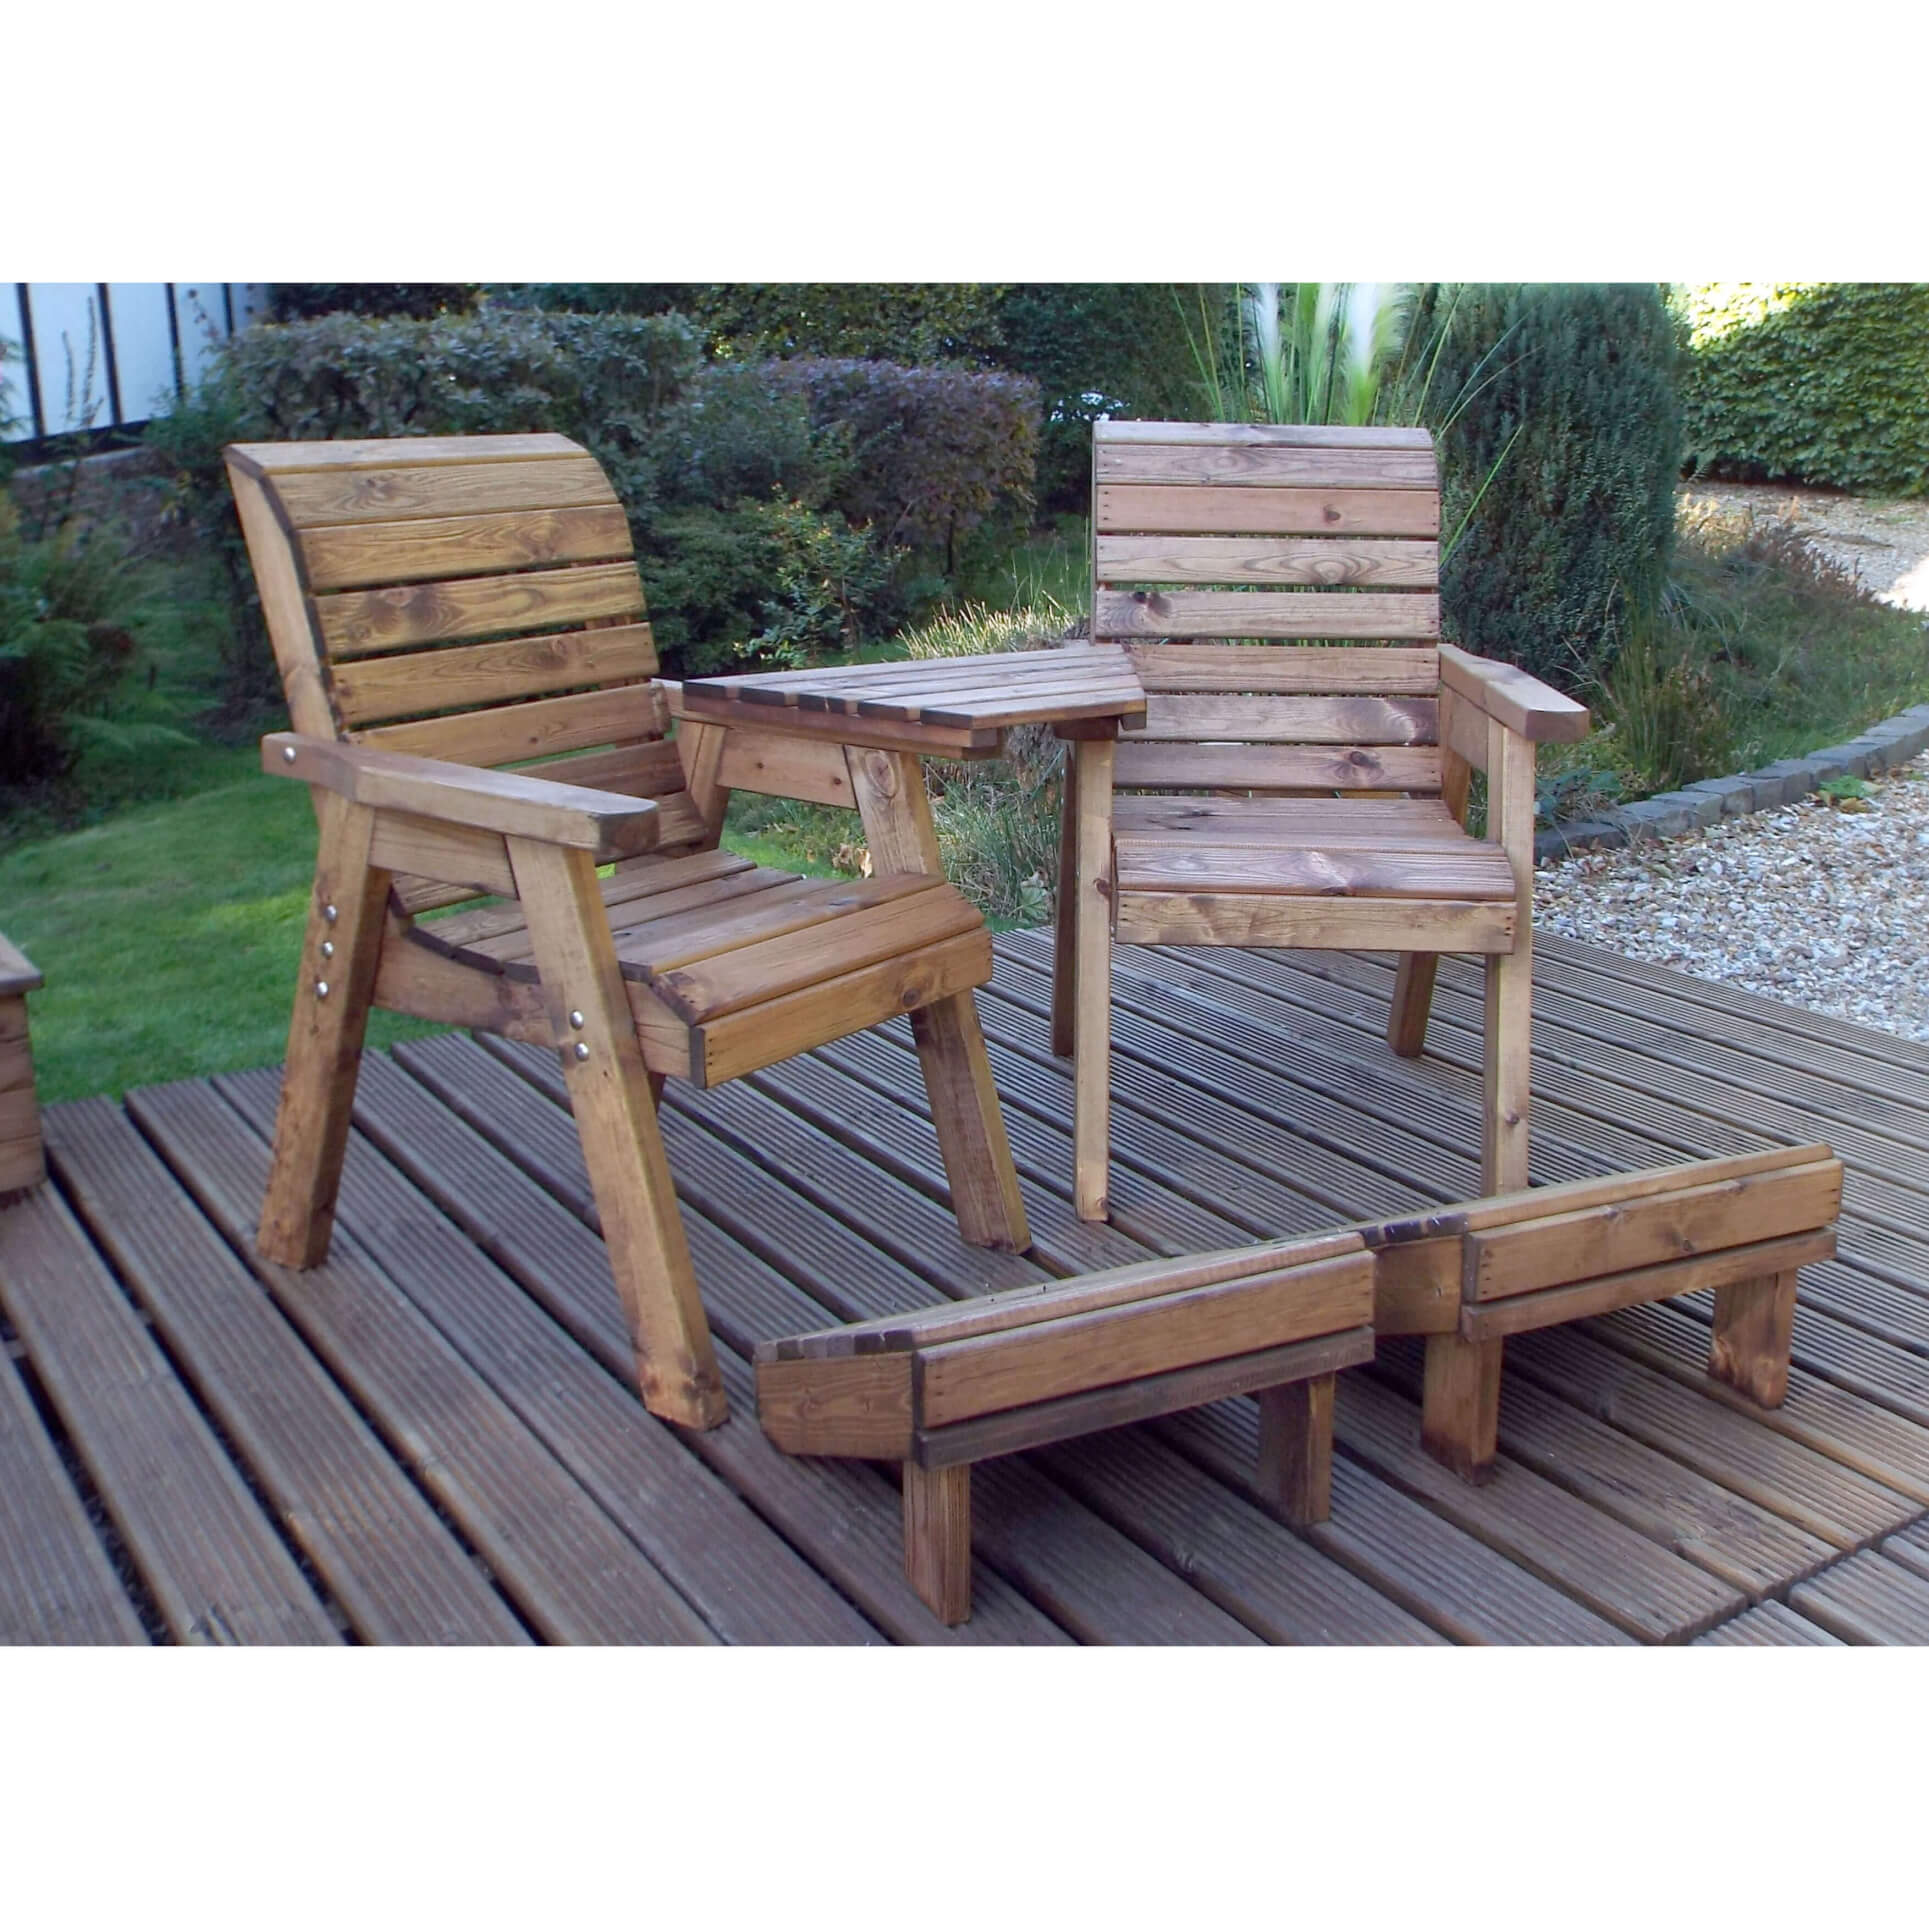 Wooden Twin Companion Seat with Footrests - Love Seat Garden Furniture